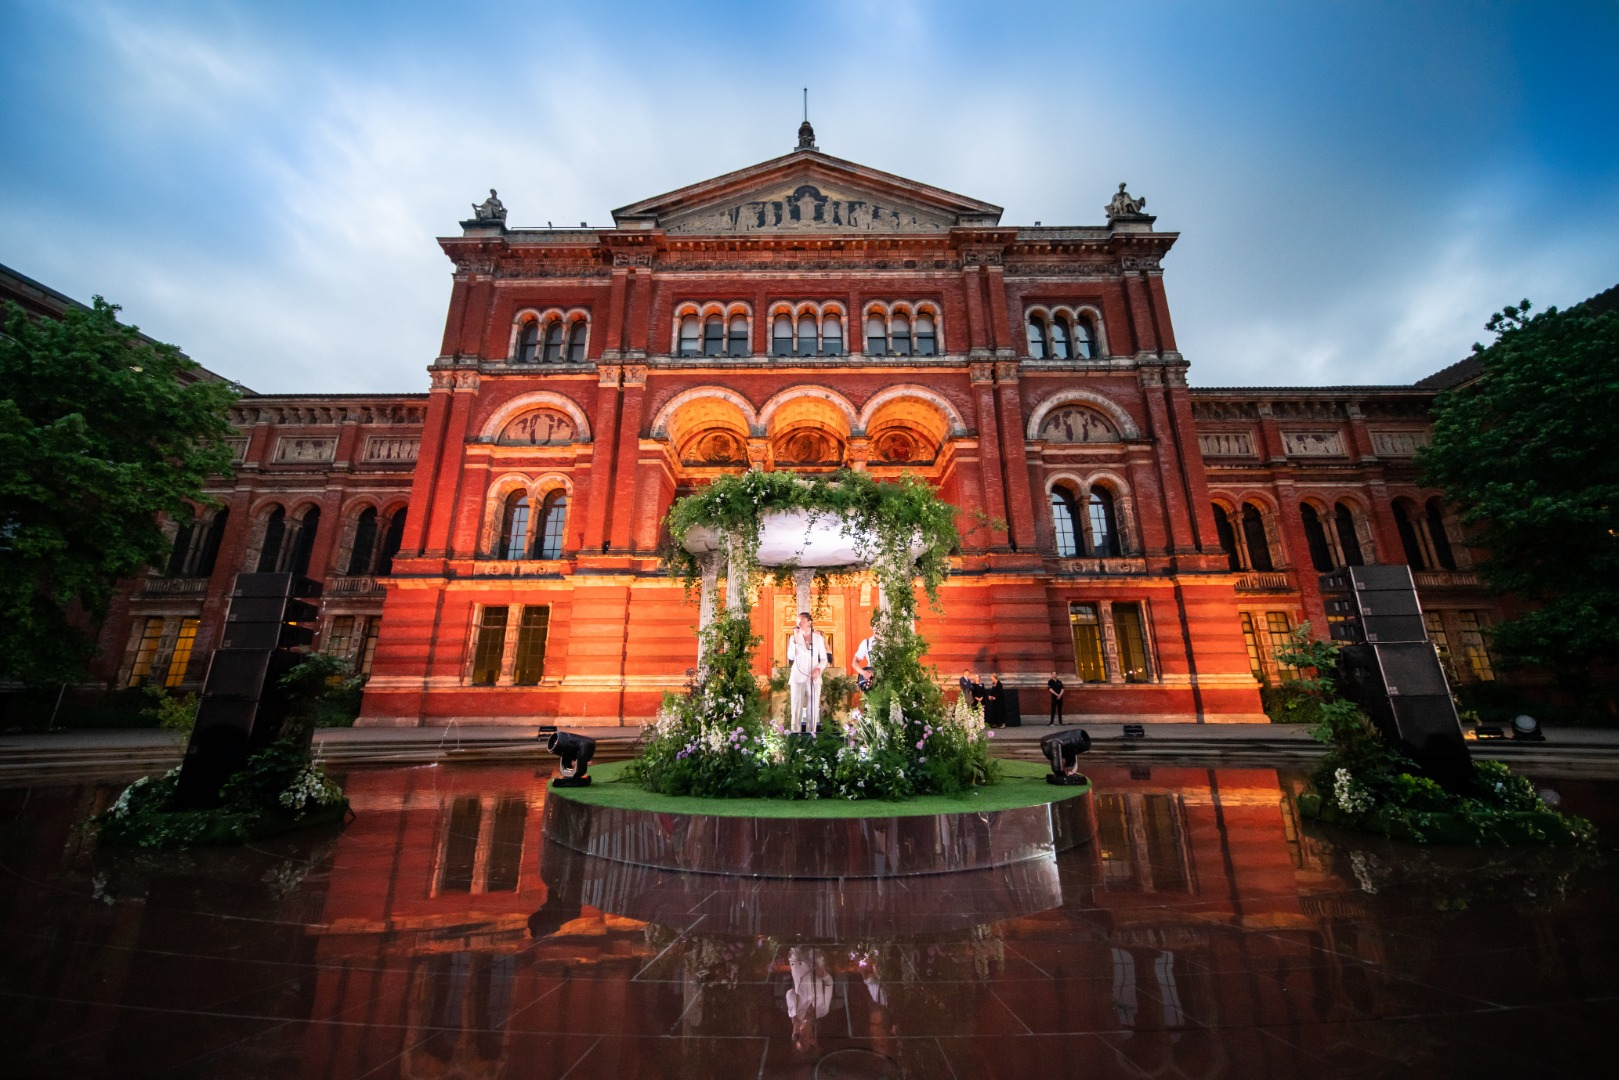 Summer party at the V&A with central stage